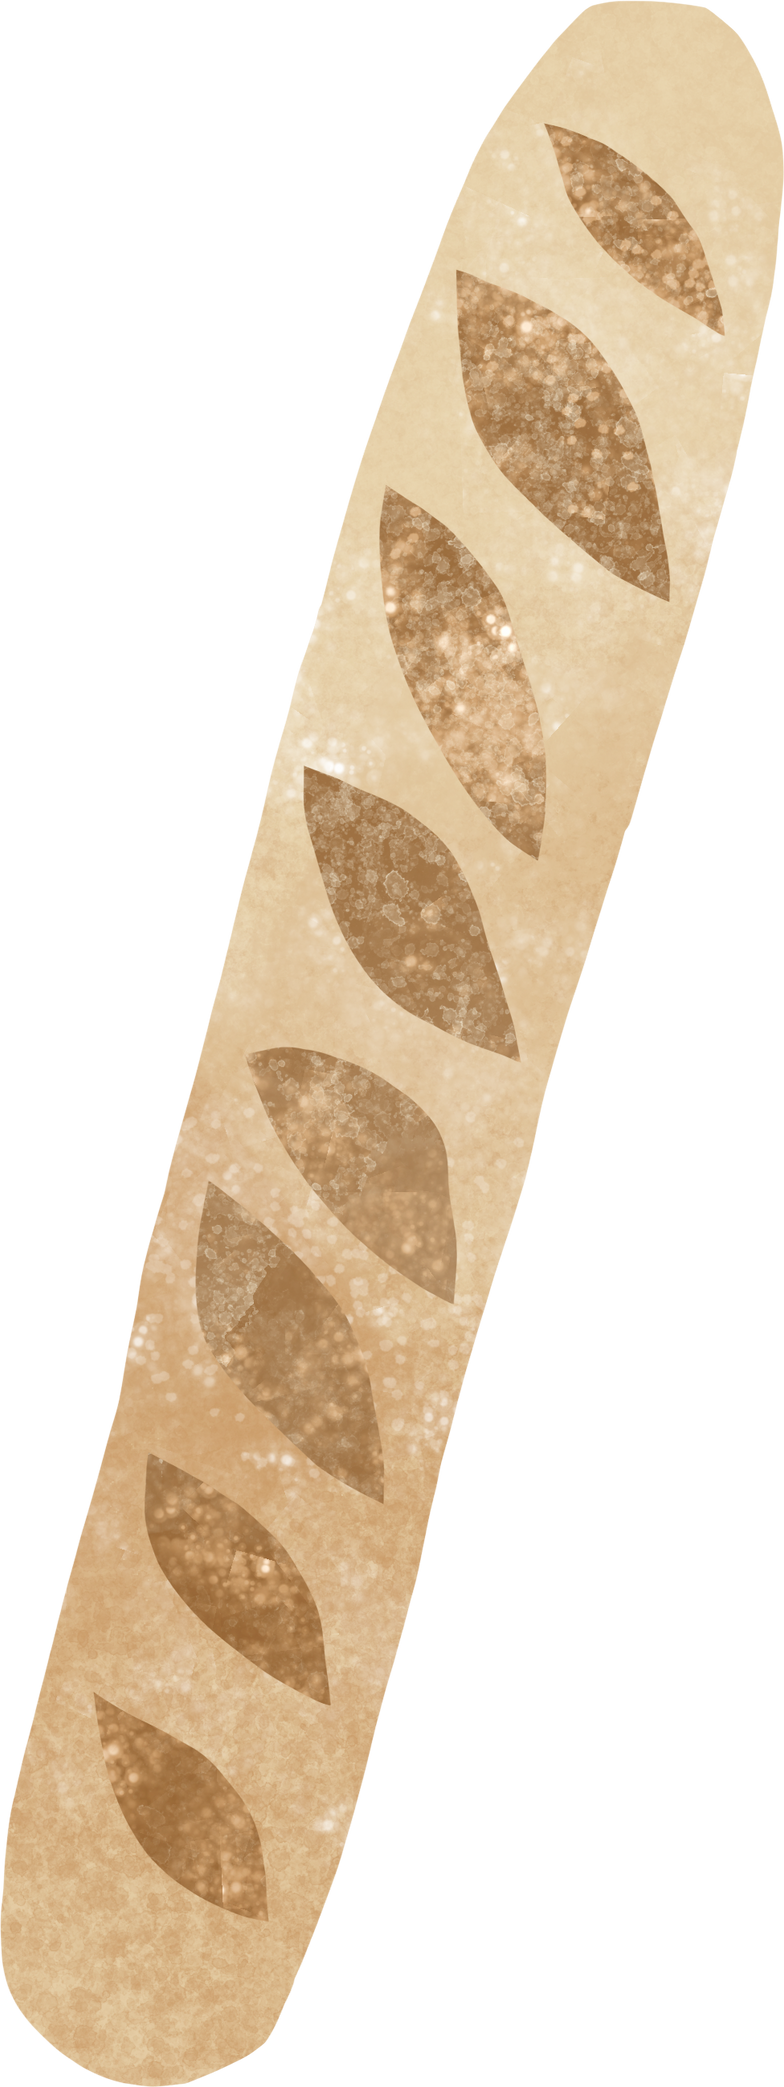 style baguette Vector images in PNG and SVG | Icons8 Illustrations